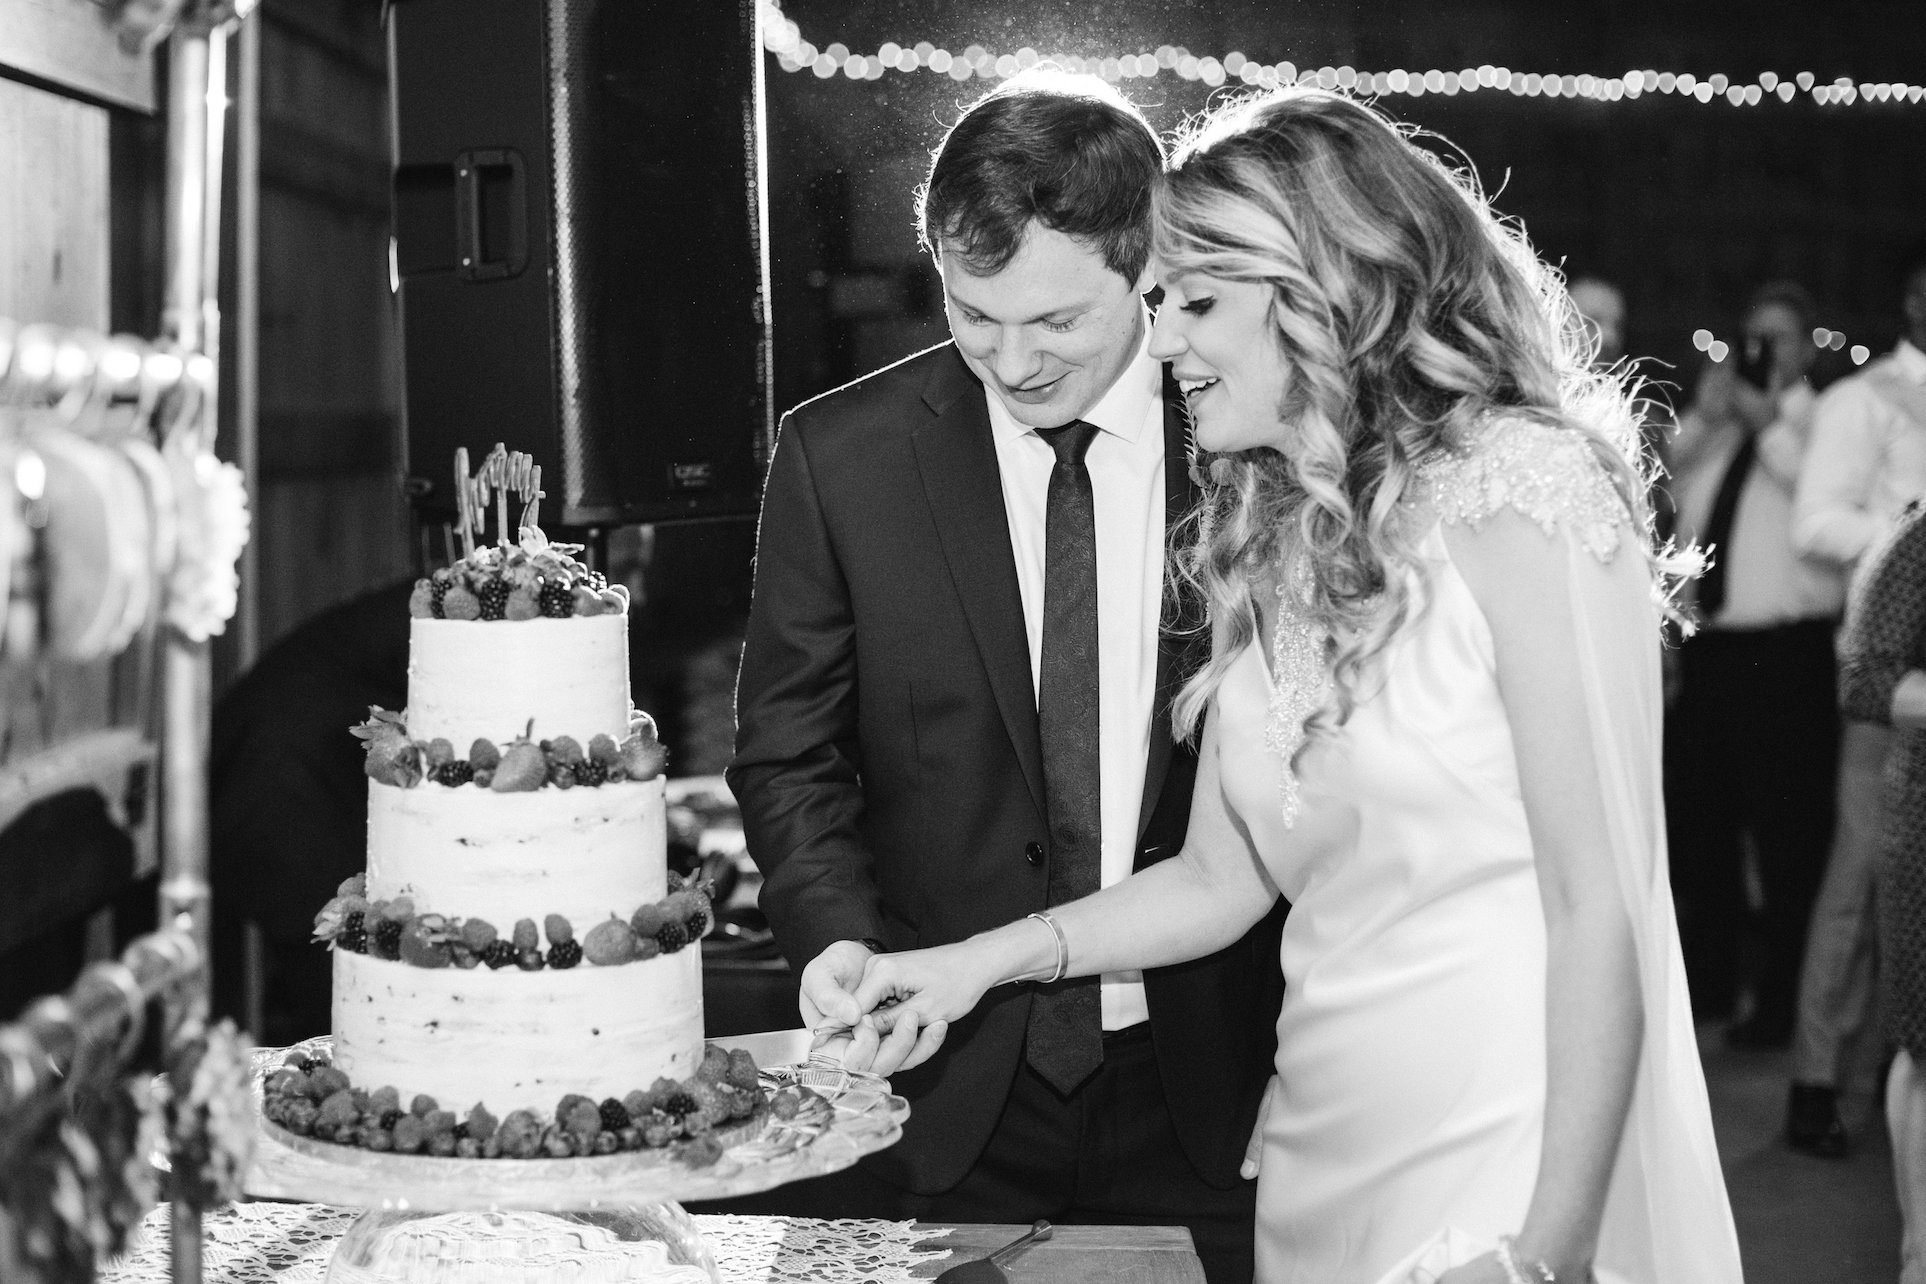 Wedding Cake Being Cut By Bride and Groom